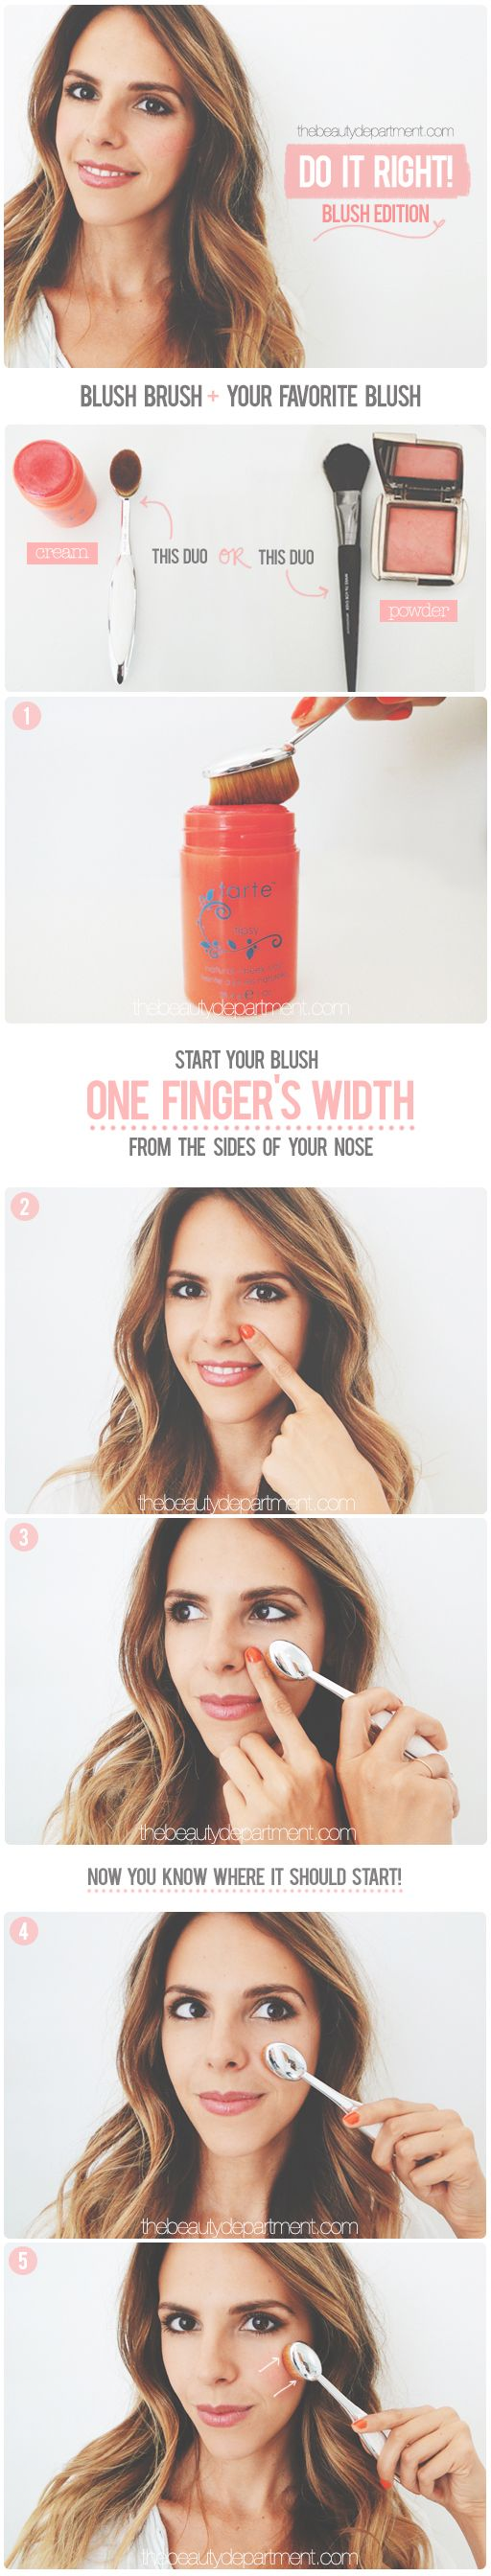 thebeautydepartment.com blush trick